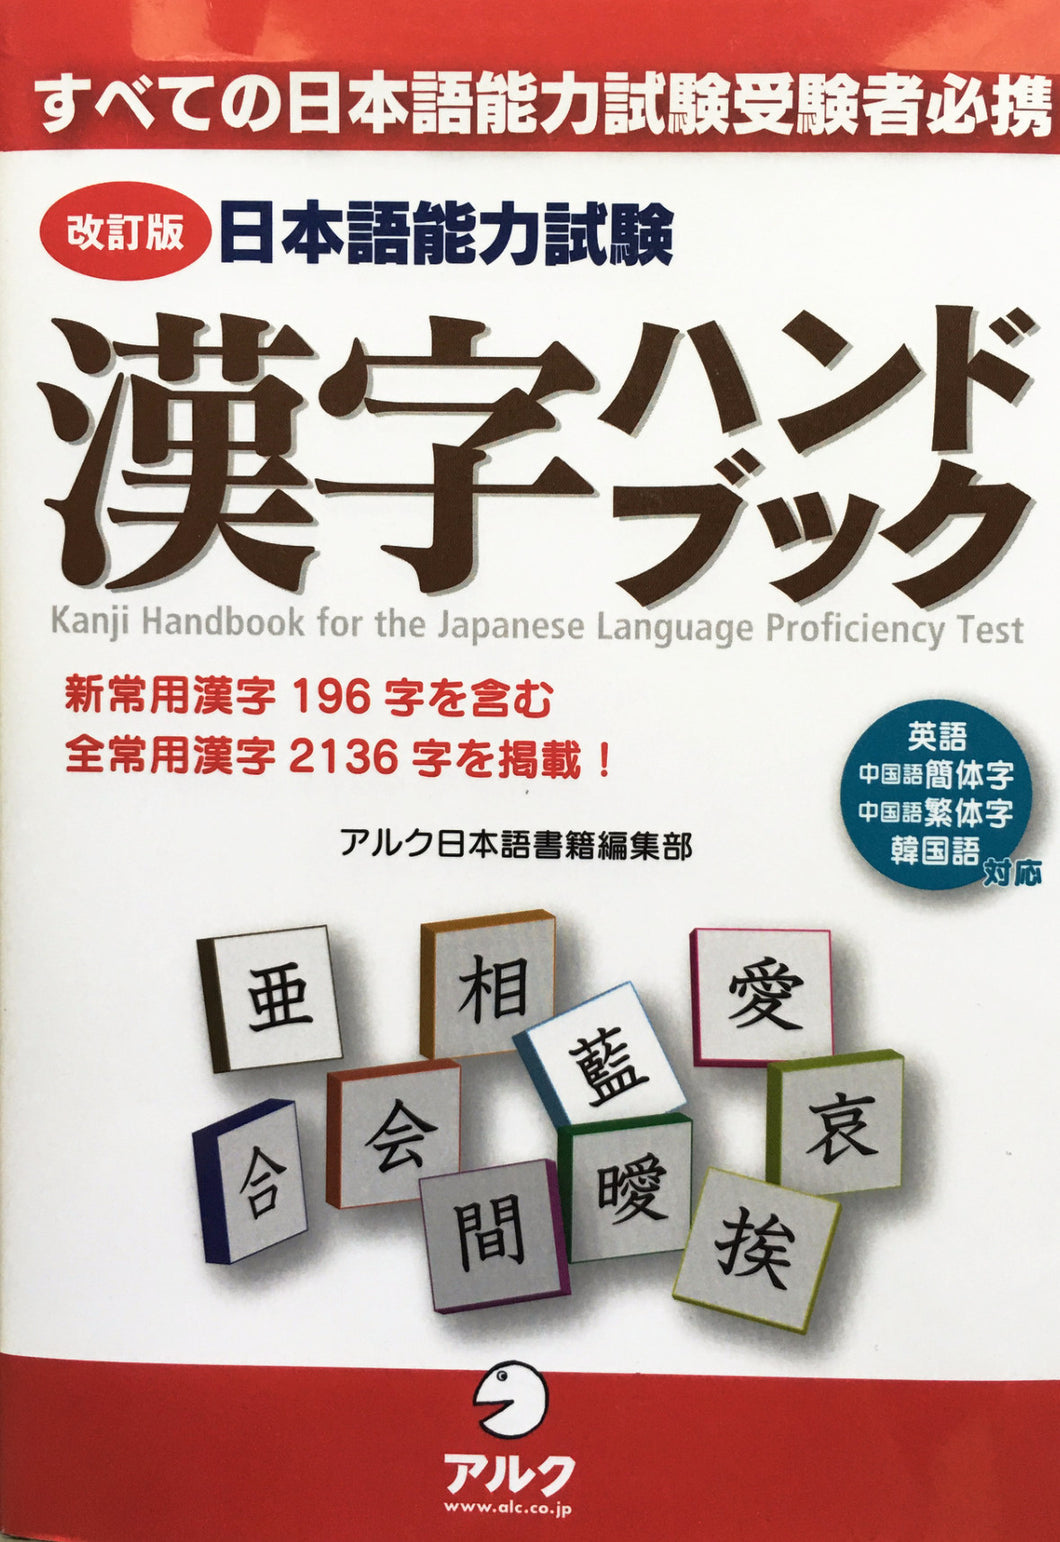 Kanji Handbook for the Japanese Language Proficiency Test (Revised Edition) - The Japan Shop